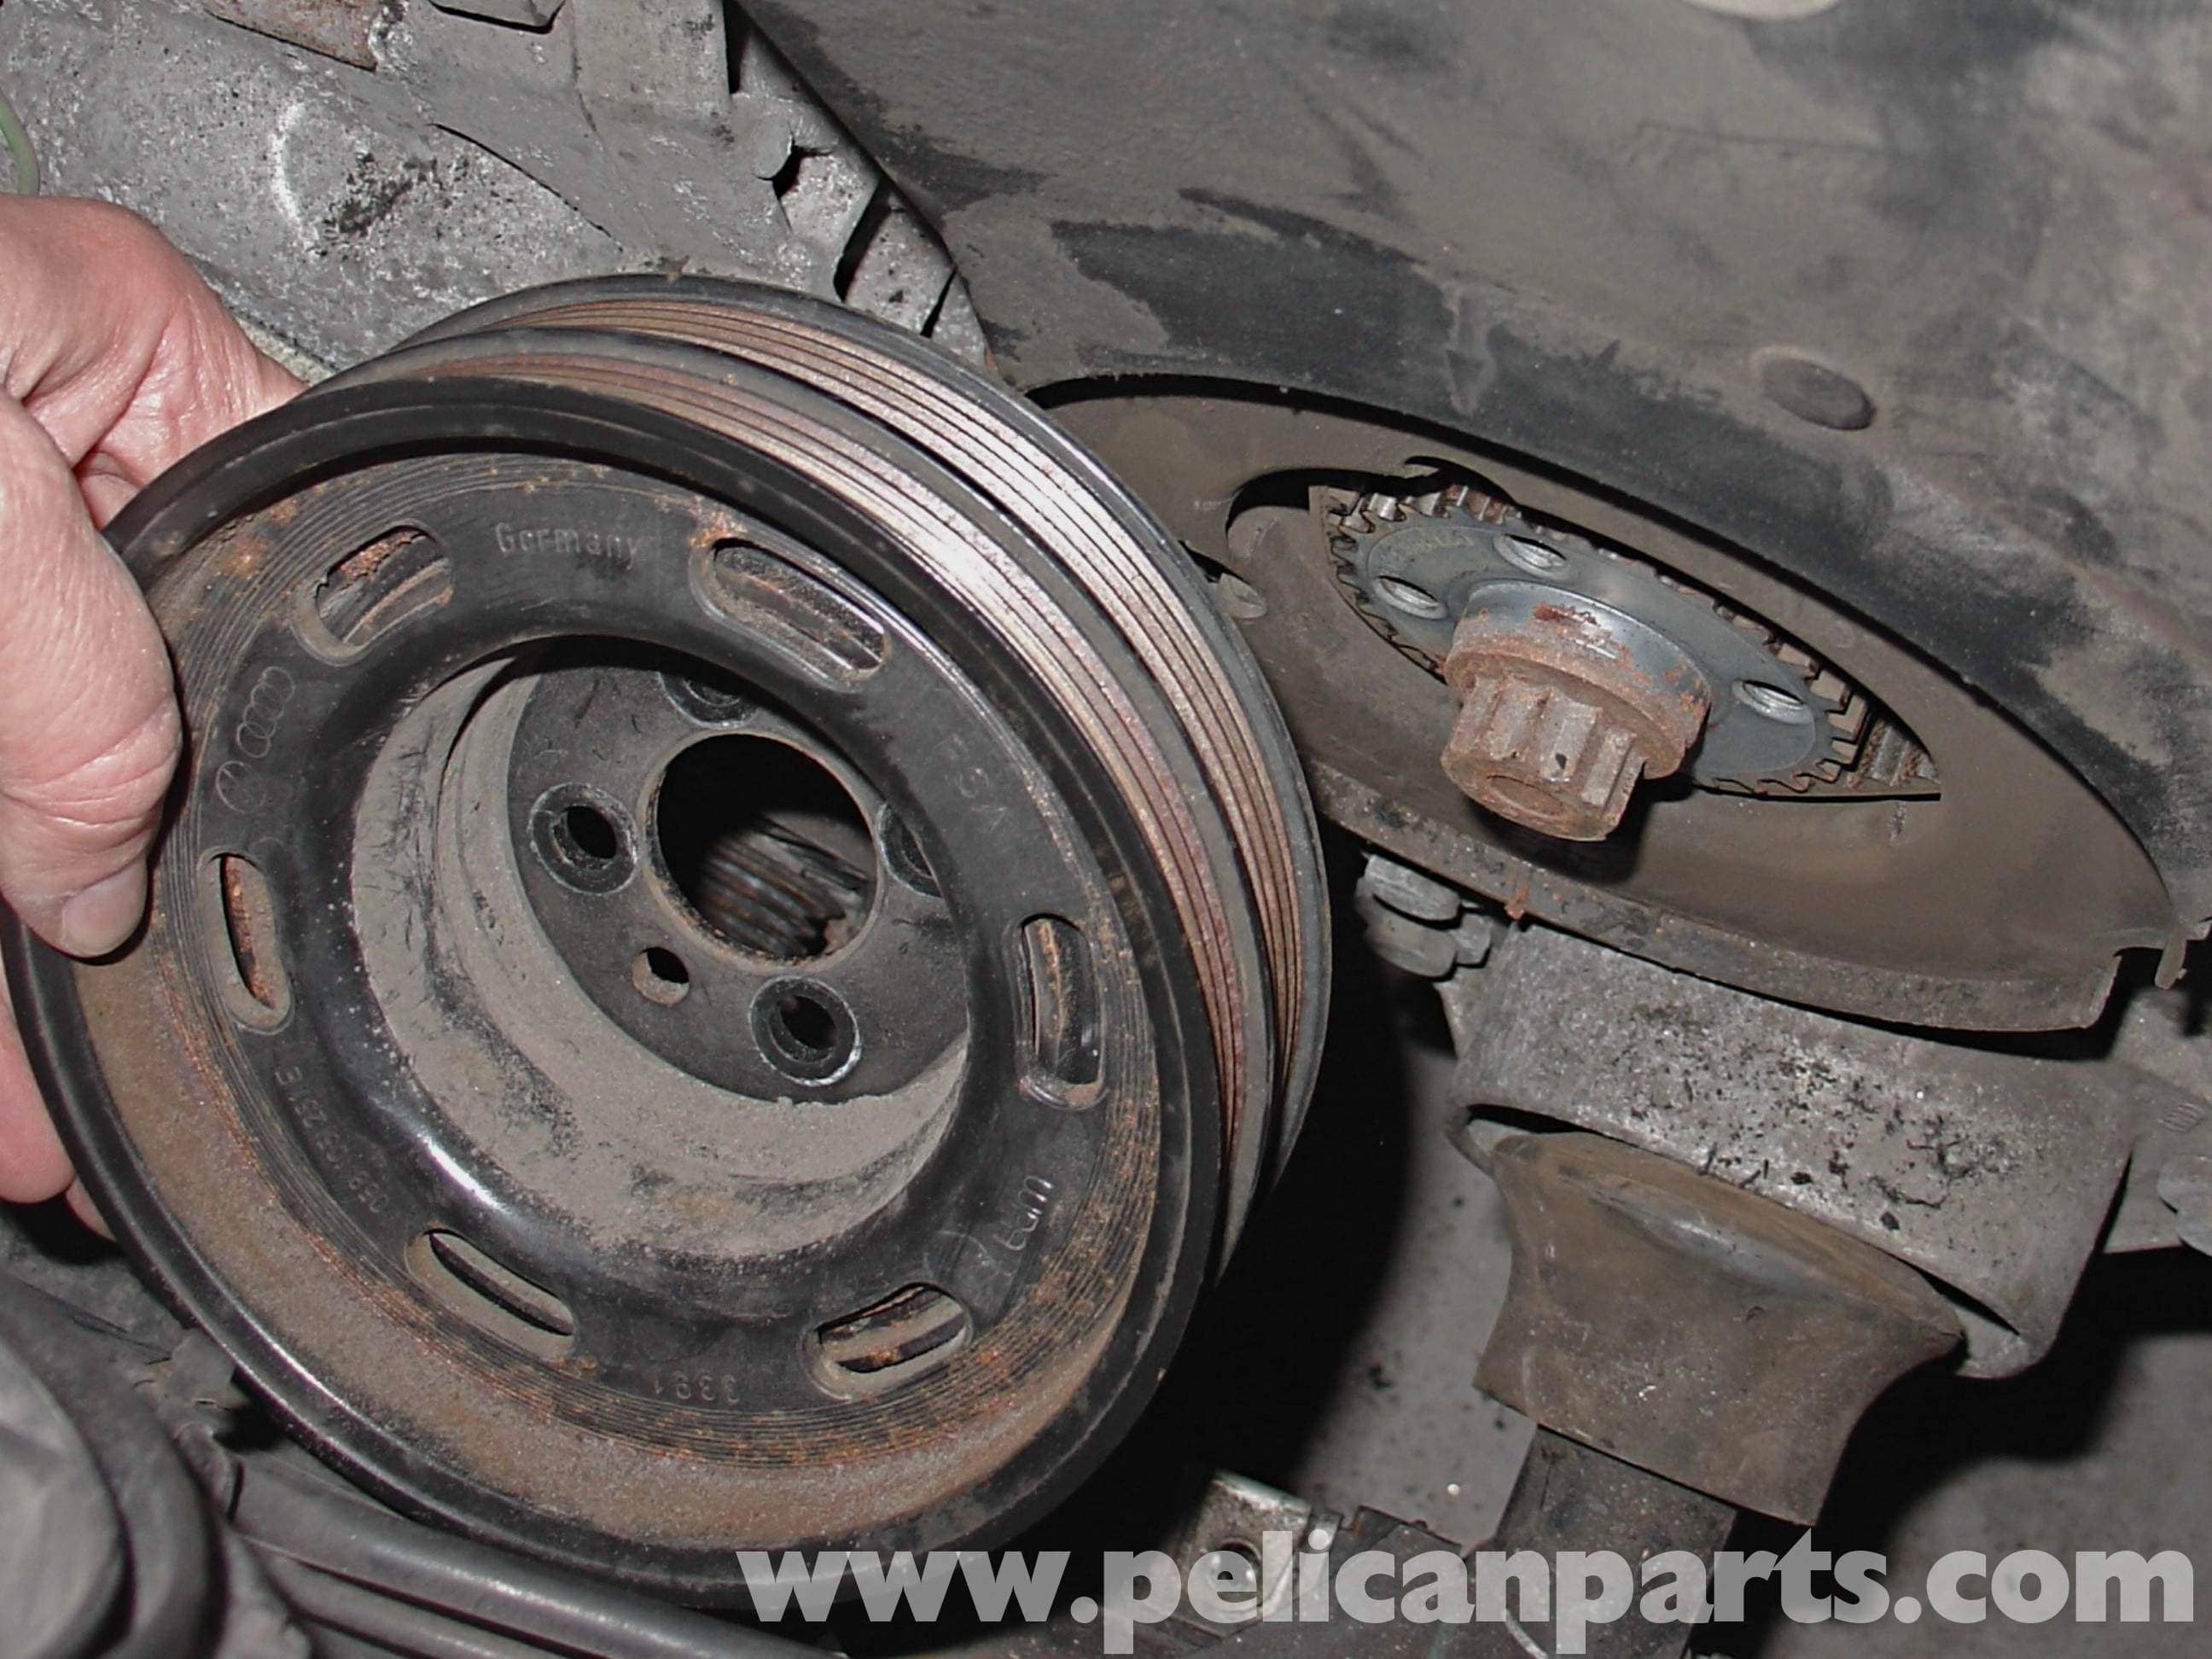 Audi A4 1.8T Volkswagen Timing Belt Replacement | Golf, Jetta, Passat & Beetle | Pelican Parts ...